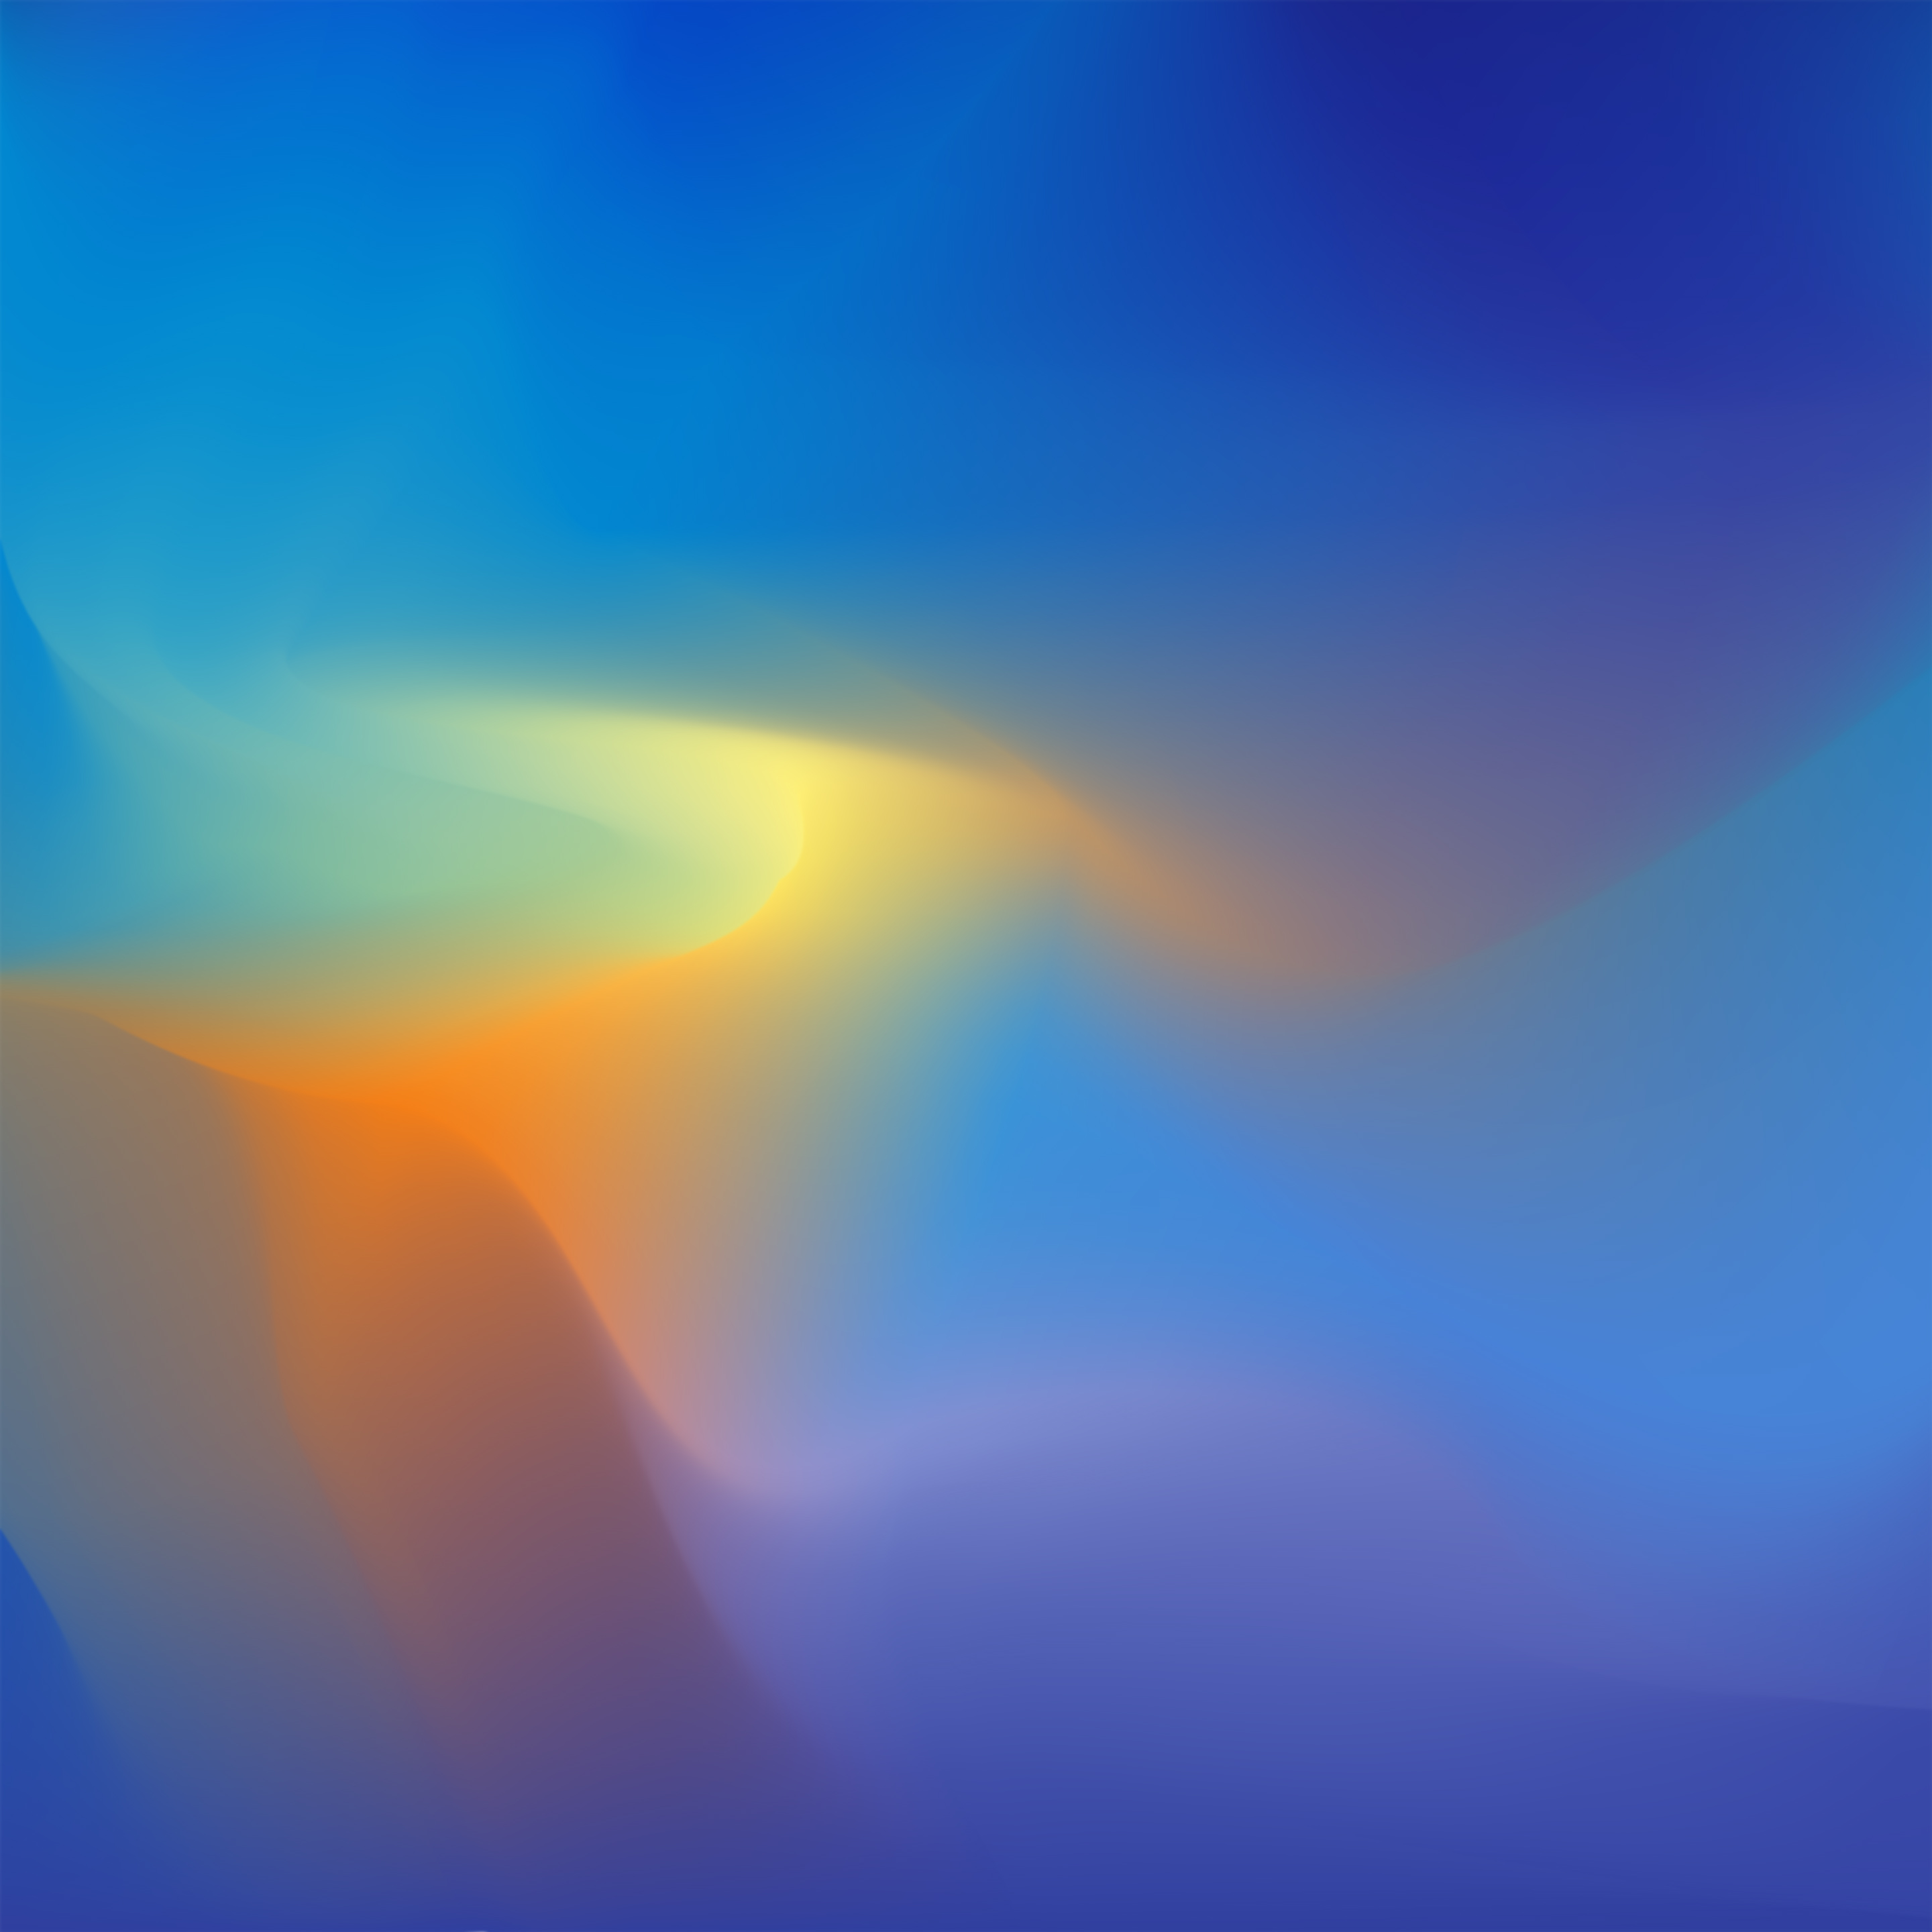 Abstract Blue Gradient Hd Abstract 4k Wallpapers Images